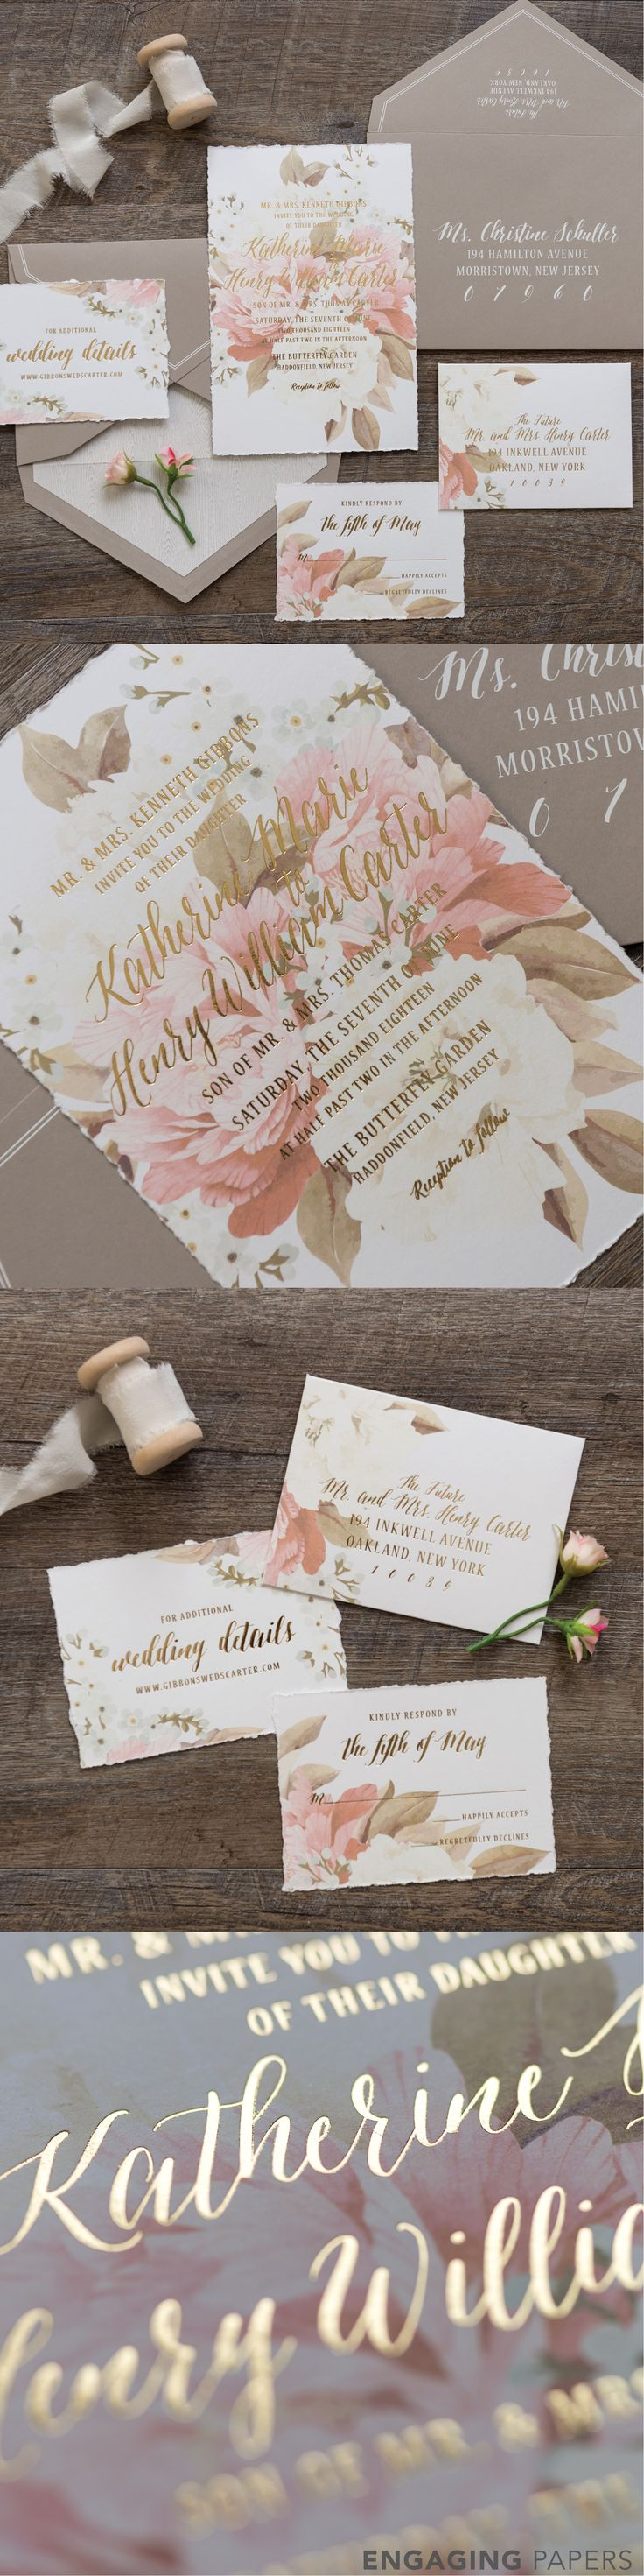 Katherine is a 1 ply thick invitation featuring deckled edges and a muted yet captivated floral print that washes through the entire wedding invitation suite. The light hearted script font is printed in gold foil throughout the invitation, enclosure cards, and RSVP set. All aspects of the design are tucked neatly into a light taupe colored envelope with white piping. Inside the envelope is a gray wood grained liner.